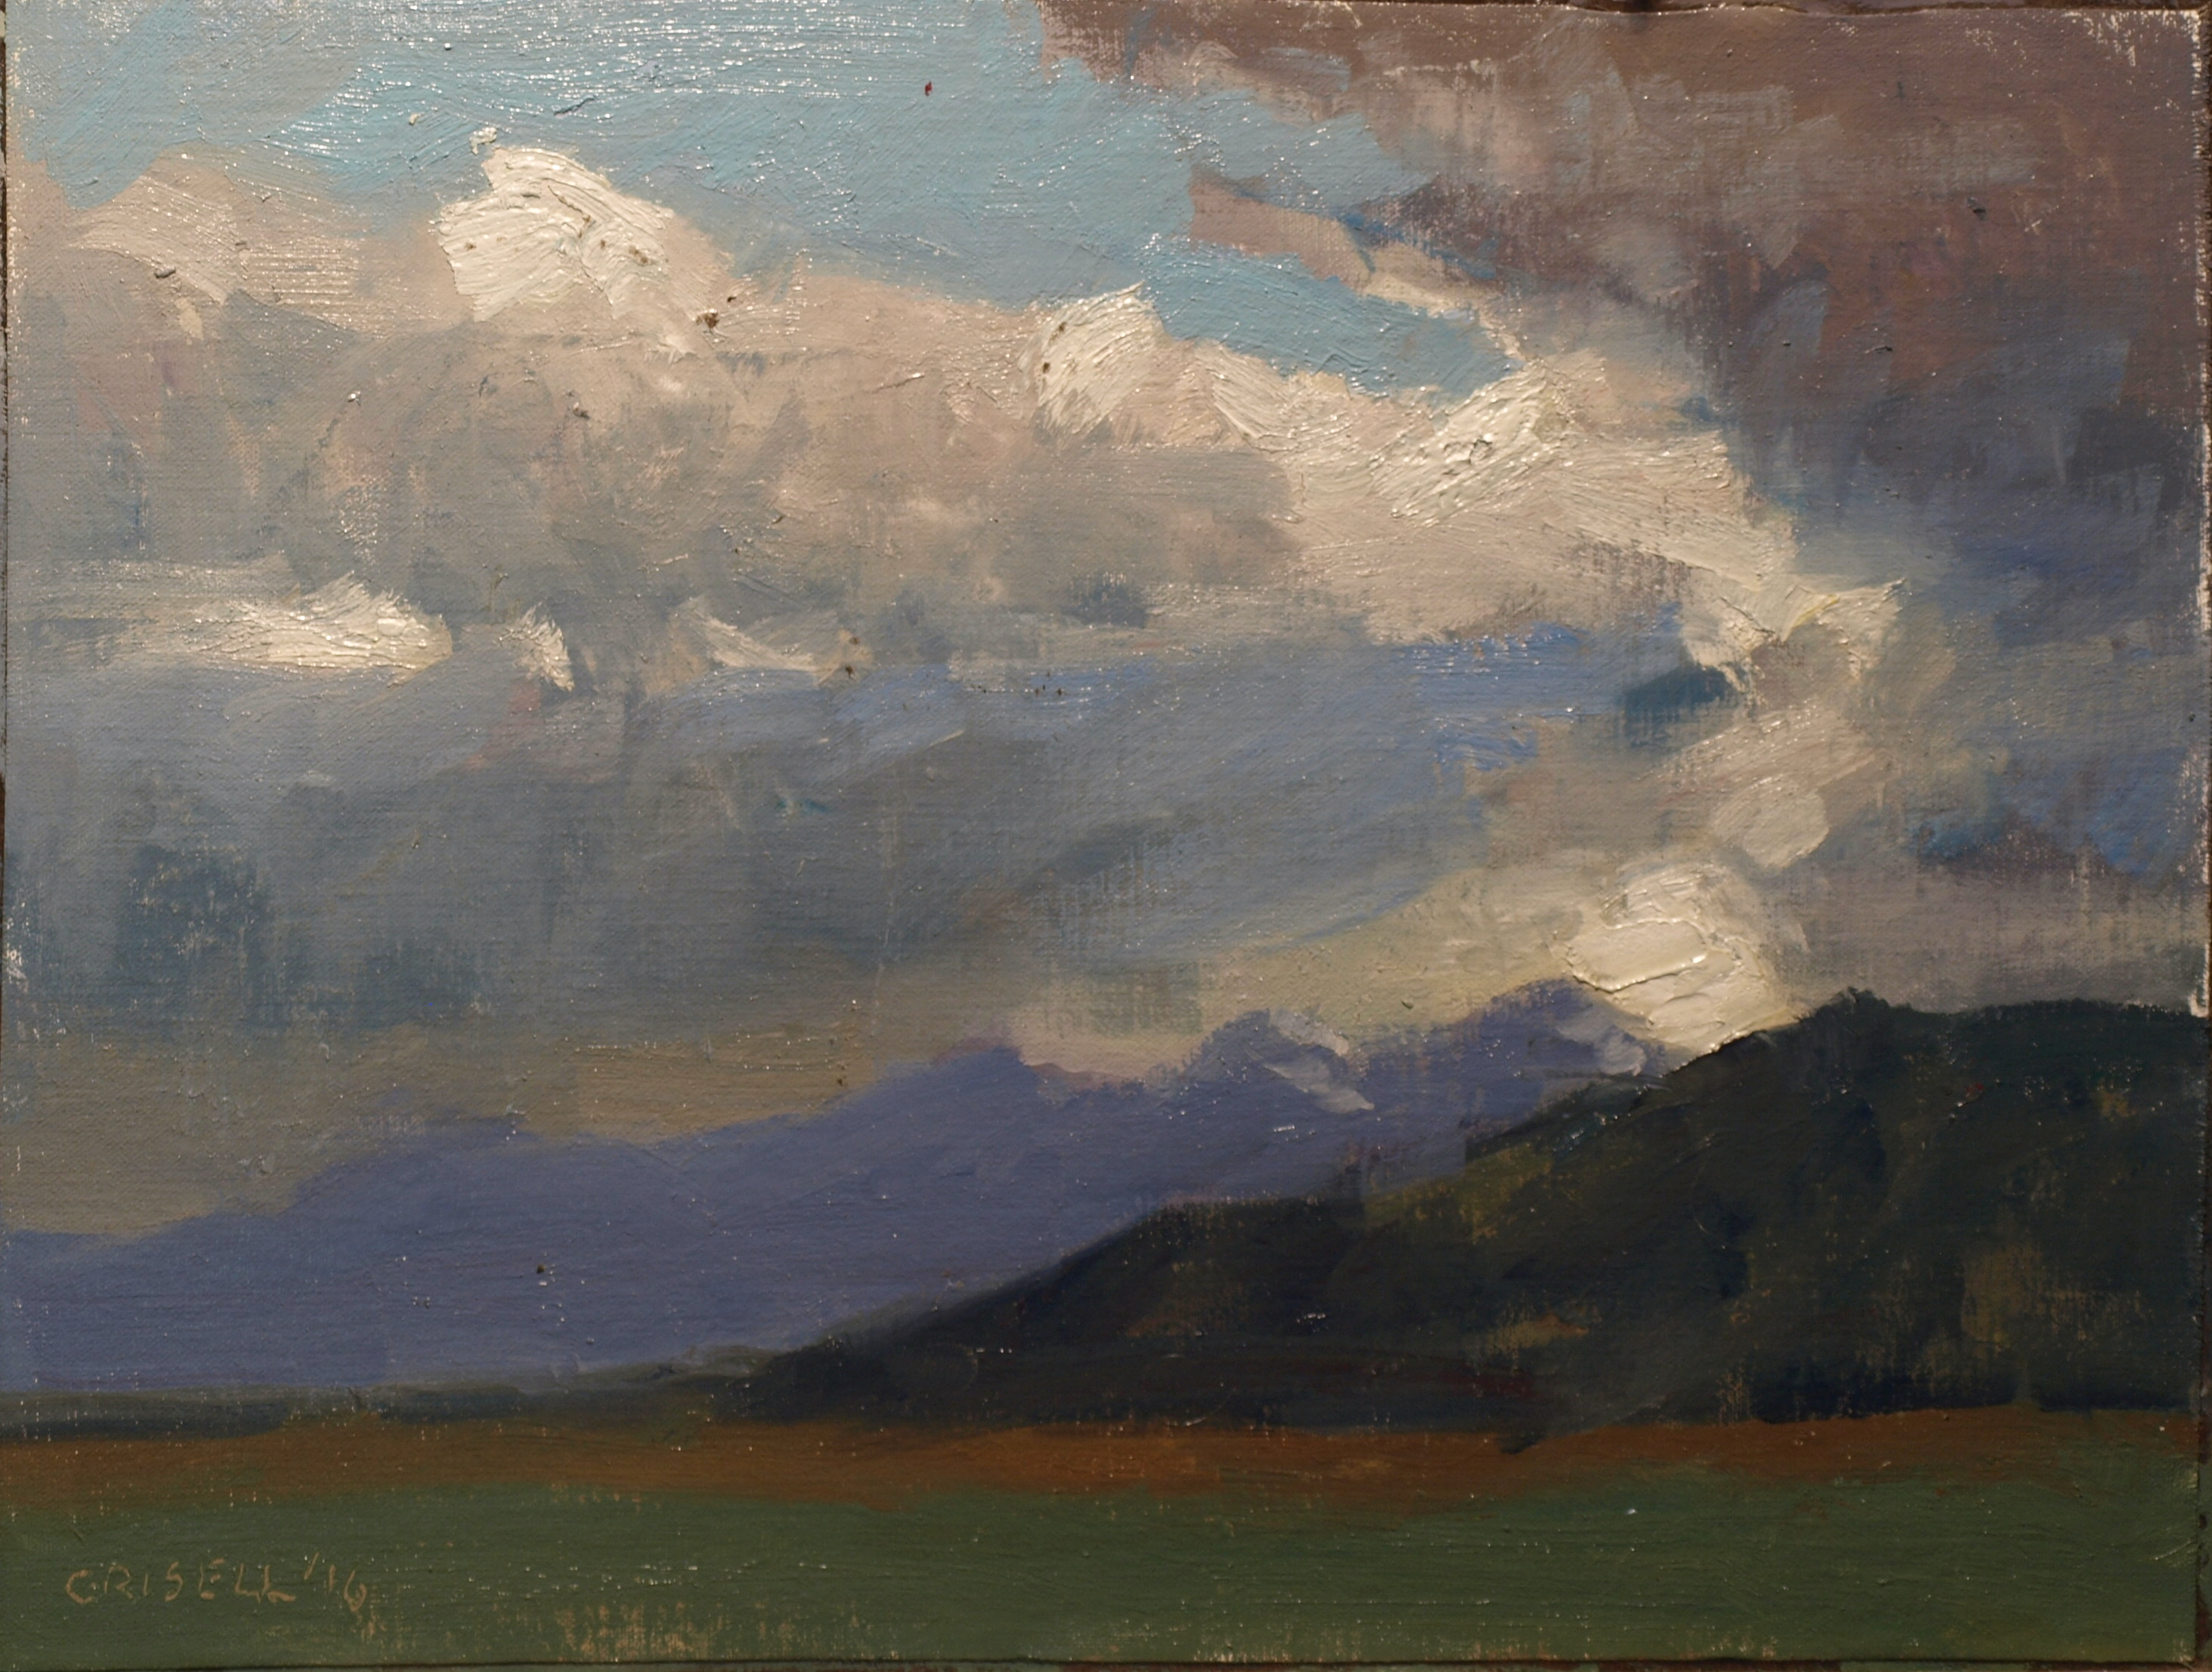 Sky Study, Oil on Canvas on Panel, 12 x 16 Inches, by Susan Grisell, $300